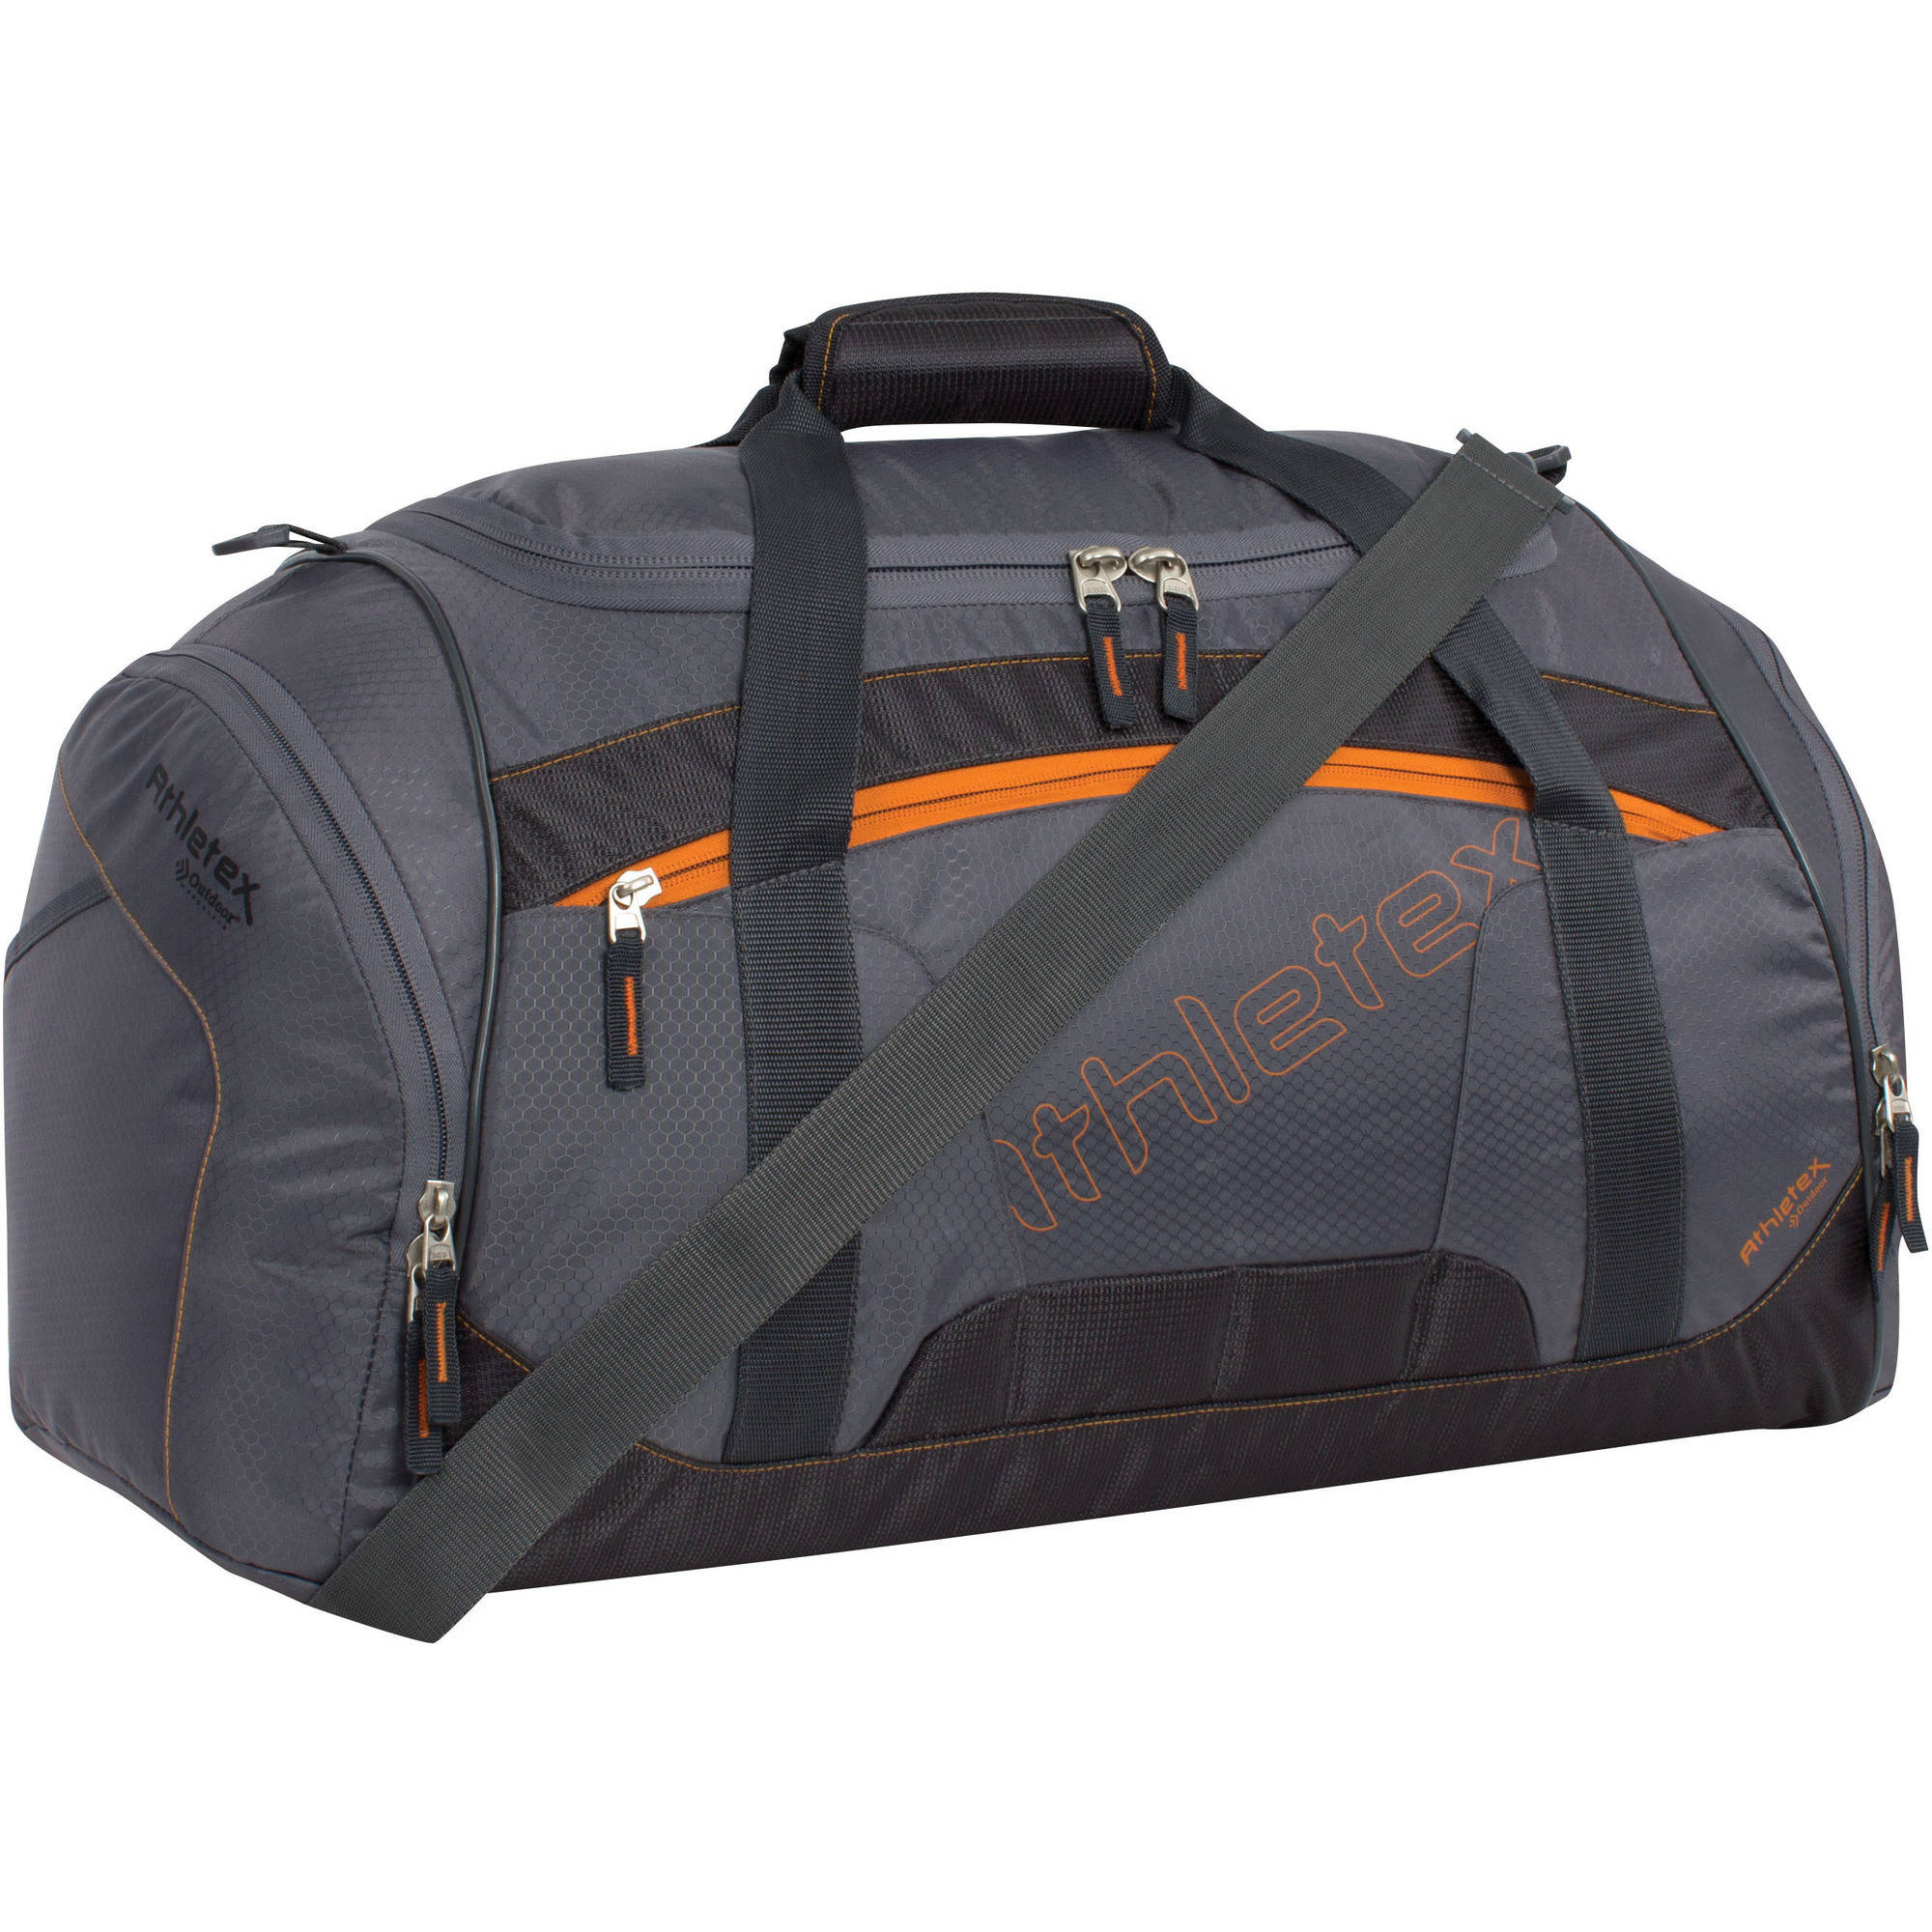 Athletex Ballistic Duffle Bag, Grey